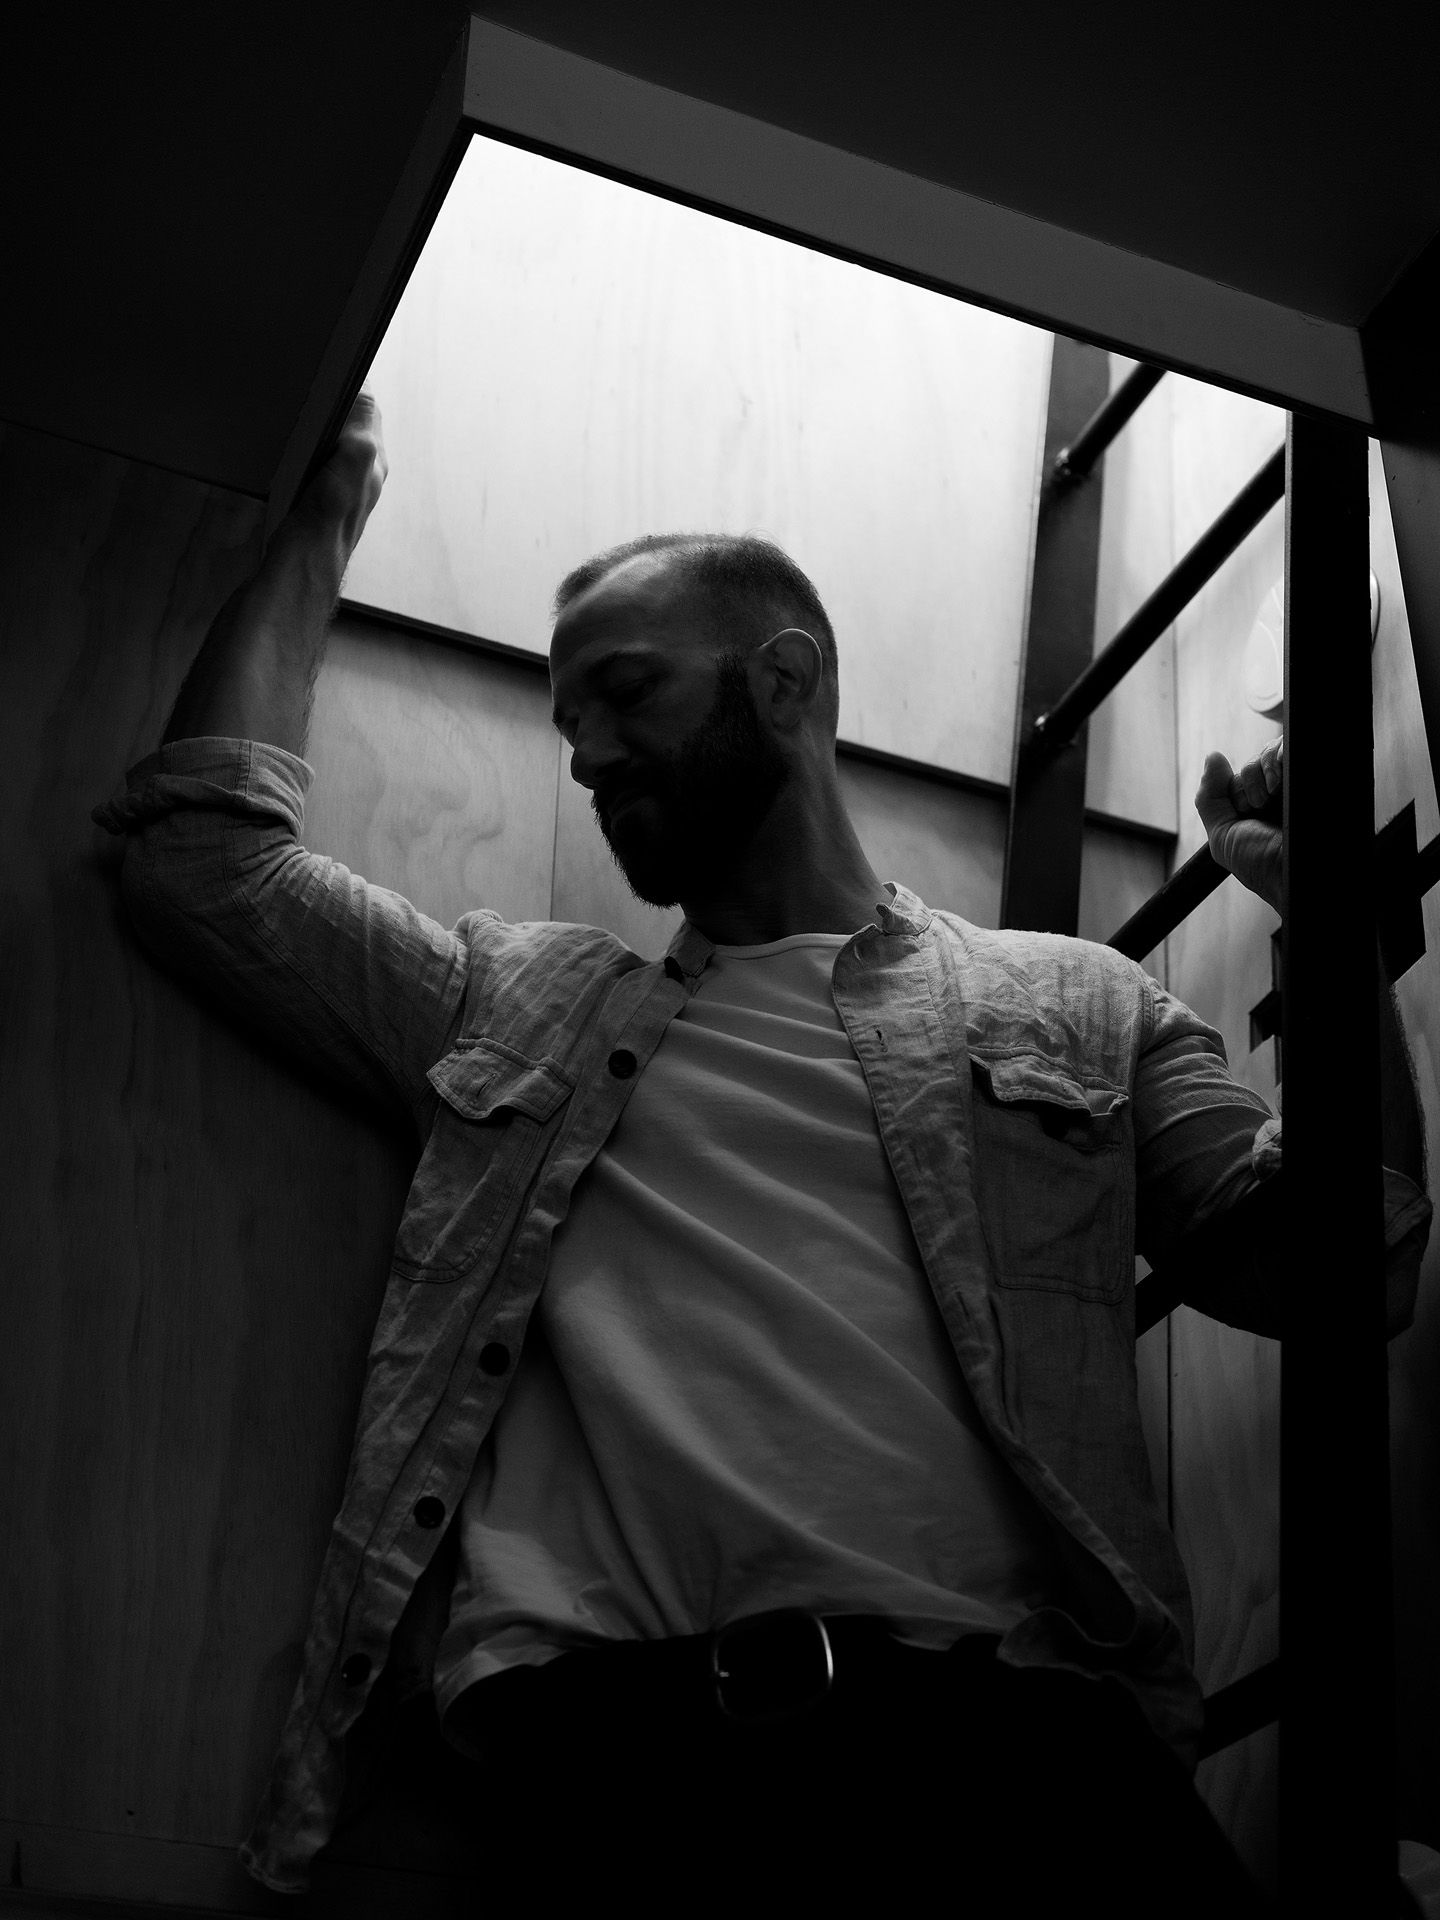 saxophonist and composer Colin Stetson holding onto a ladder light coming from above picture in black and white photographed by Guillaume Simoneau